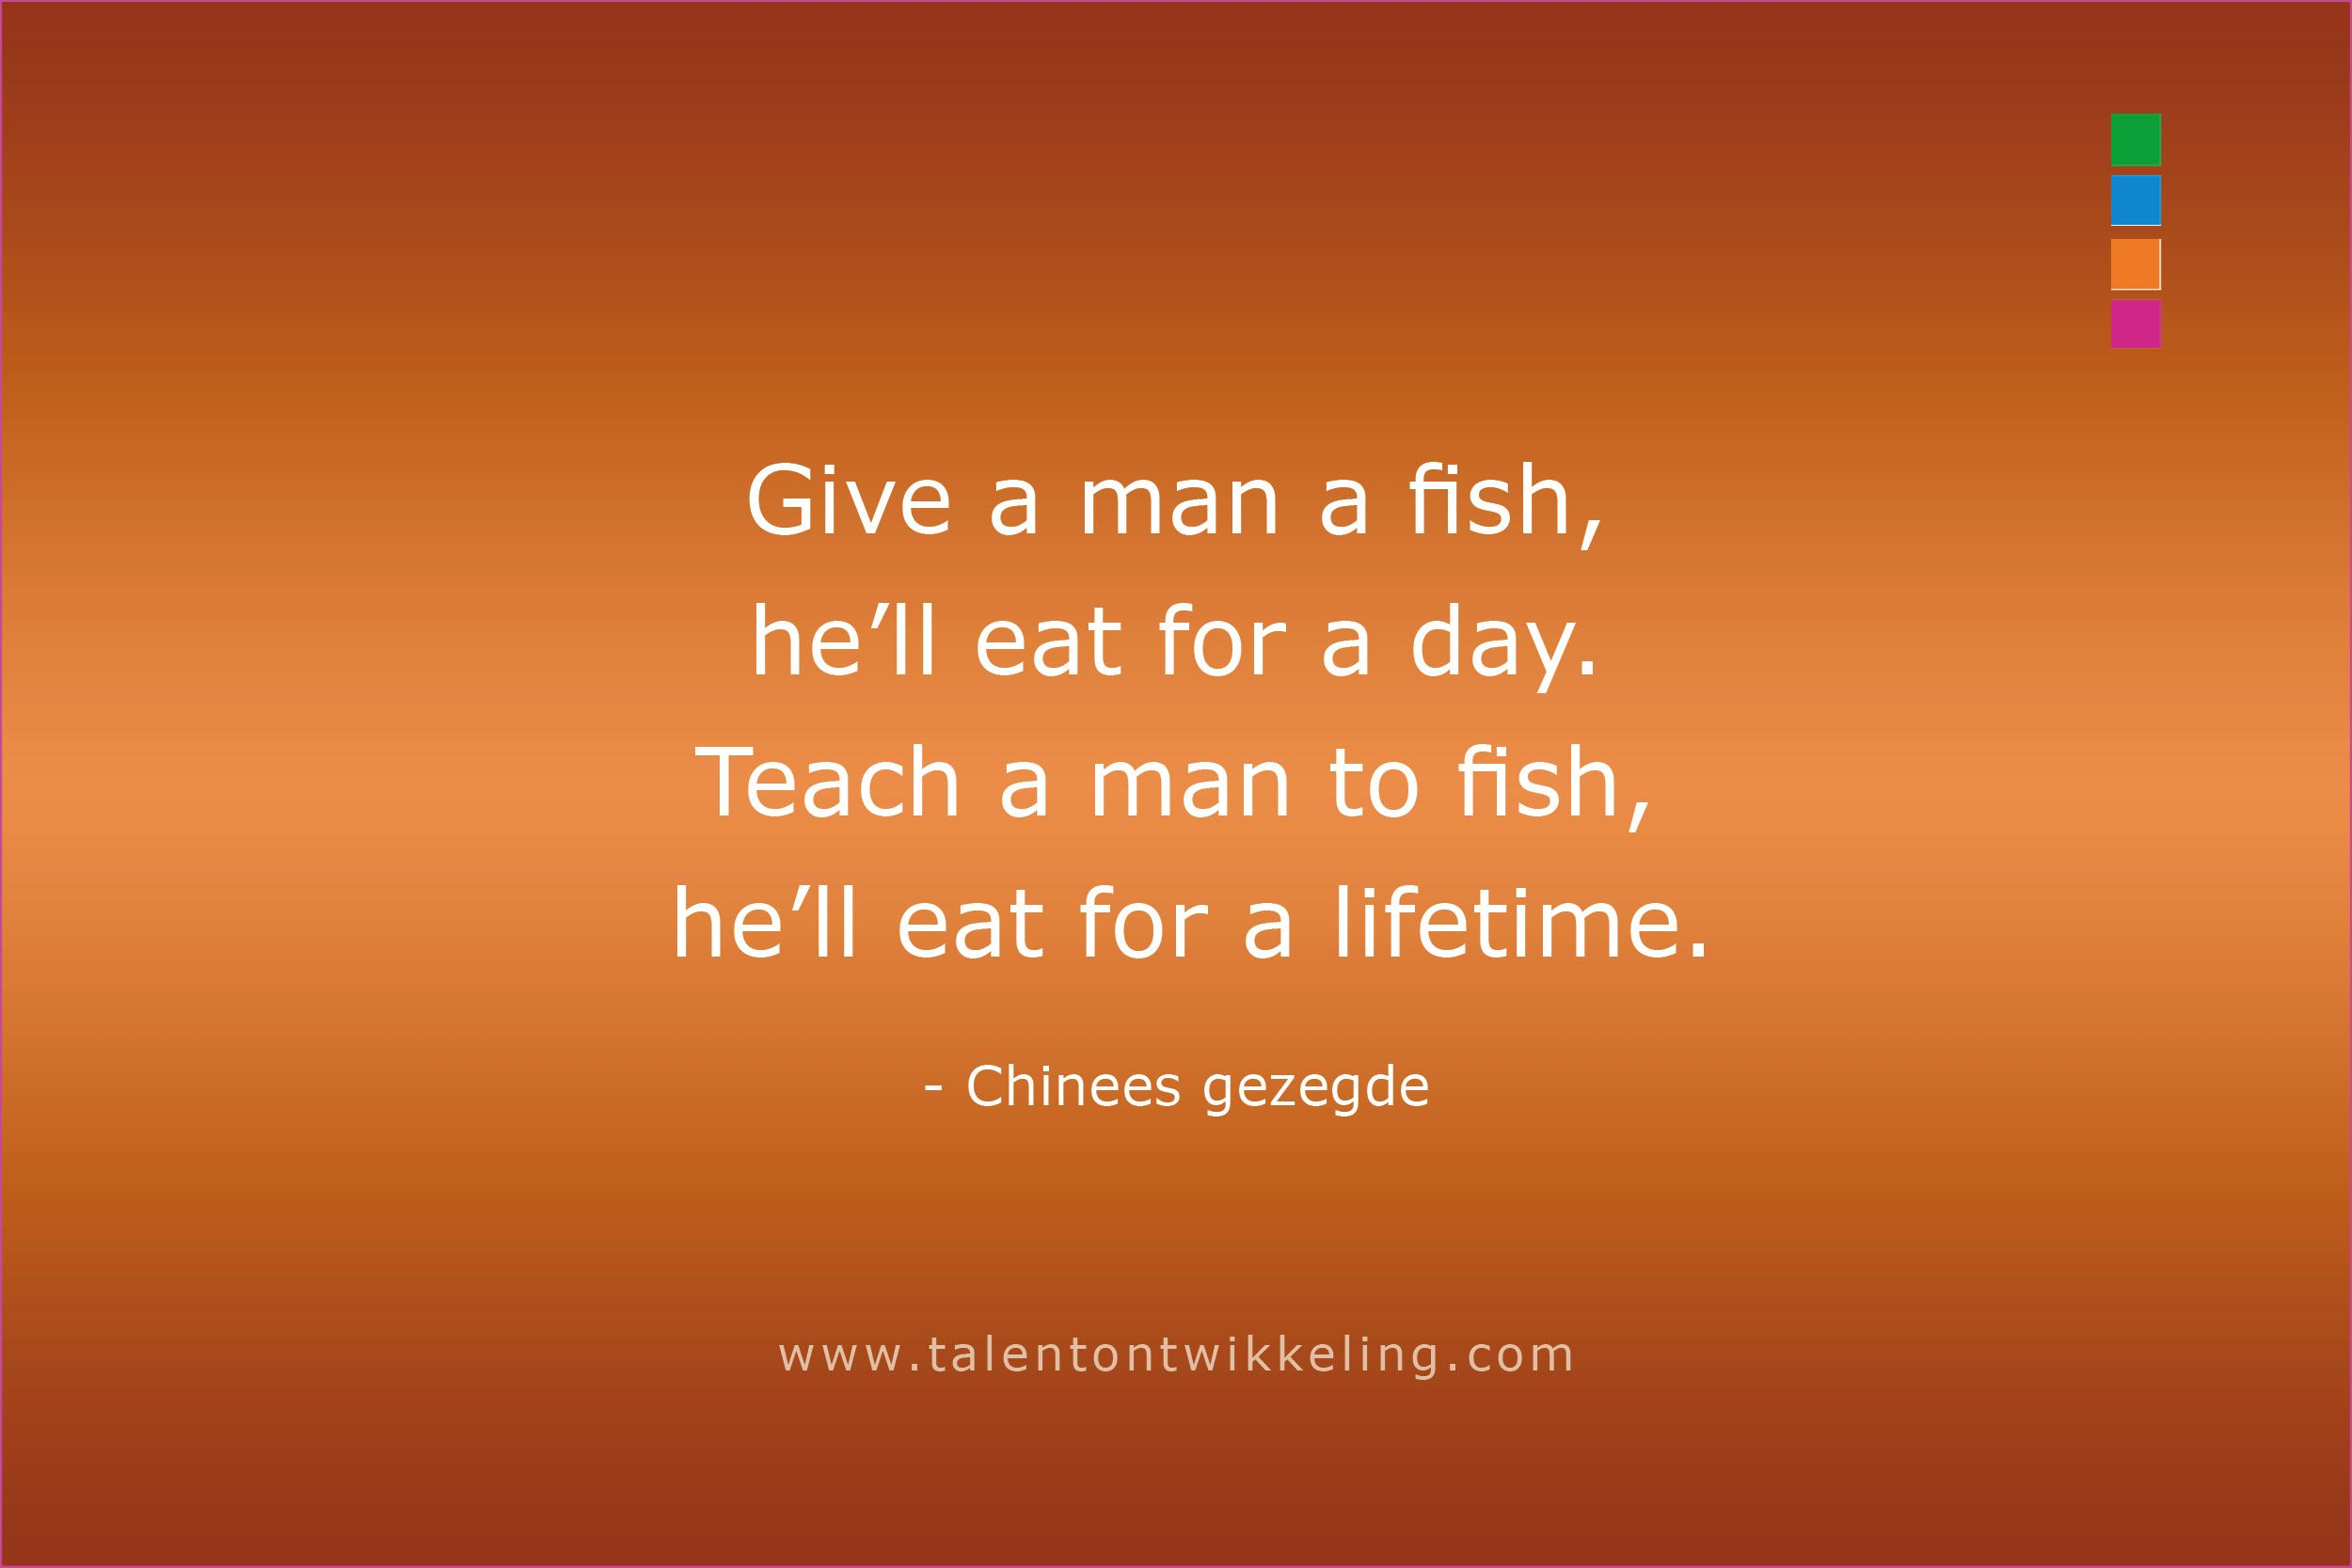 Give a man a fish and you feed him for a day. Teach a man